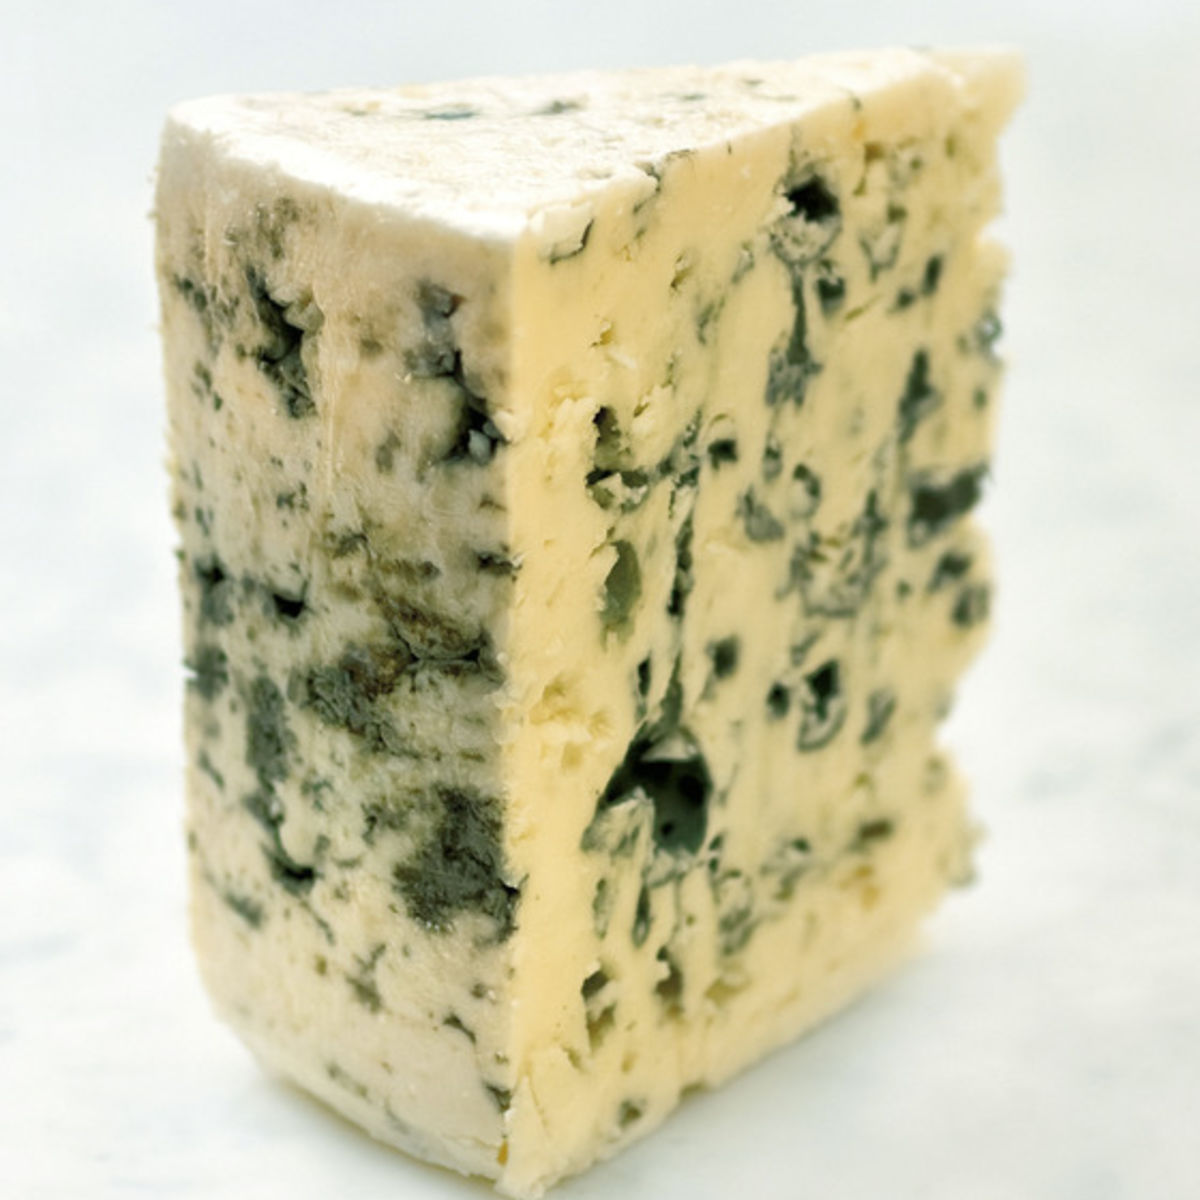 The picture shows a piece of noble-mold cheese.